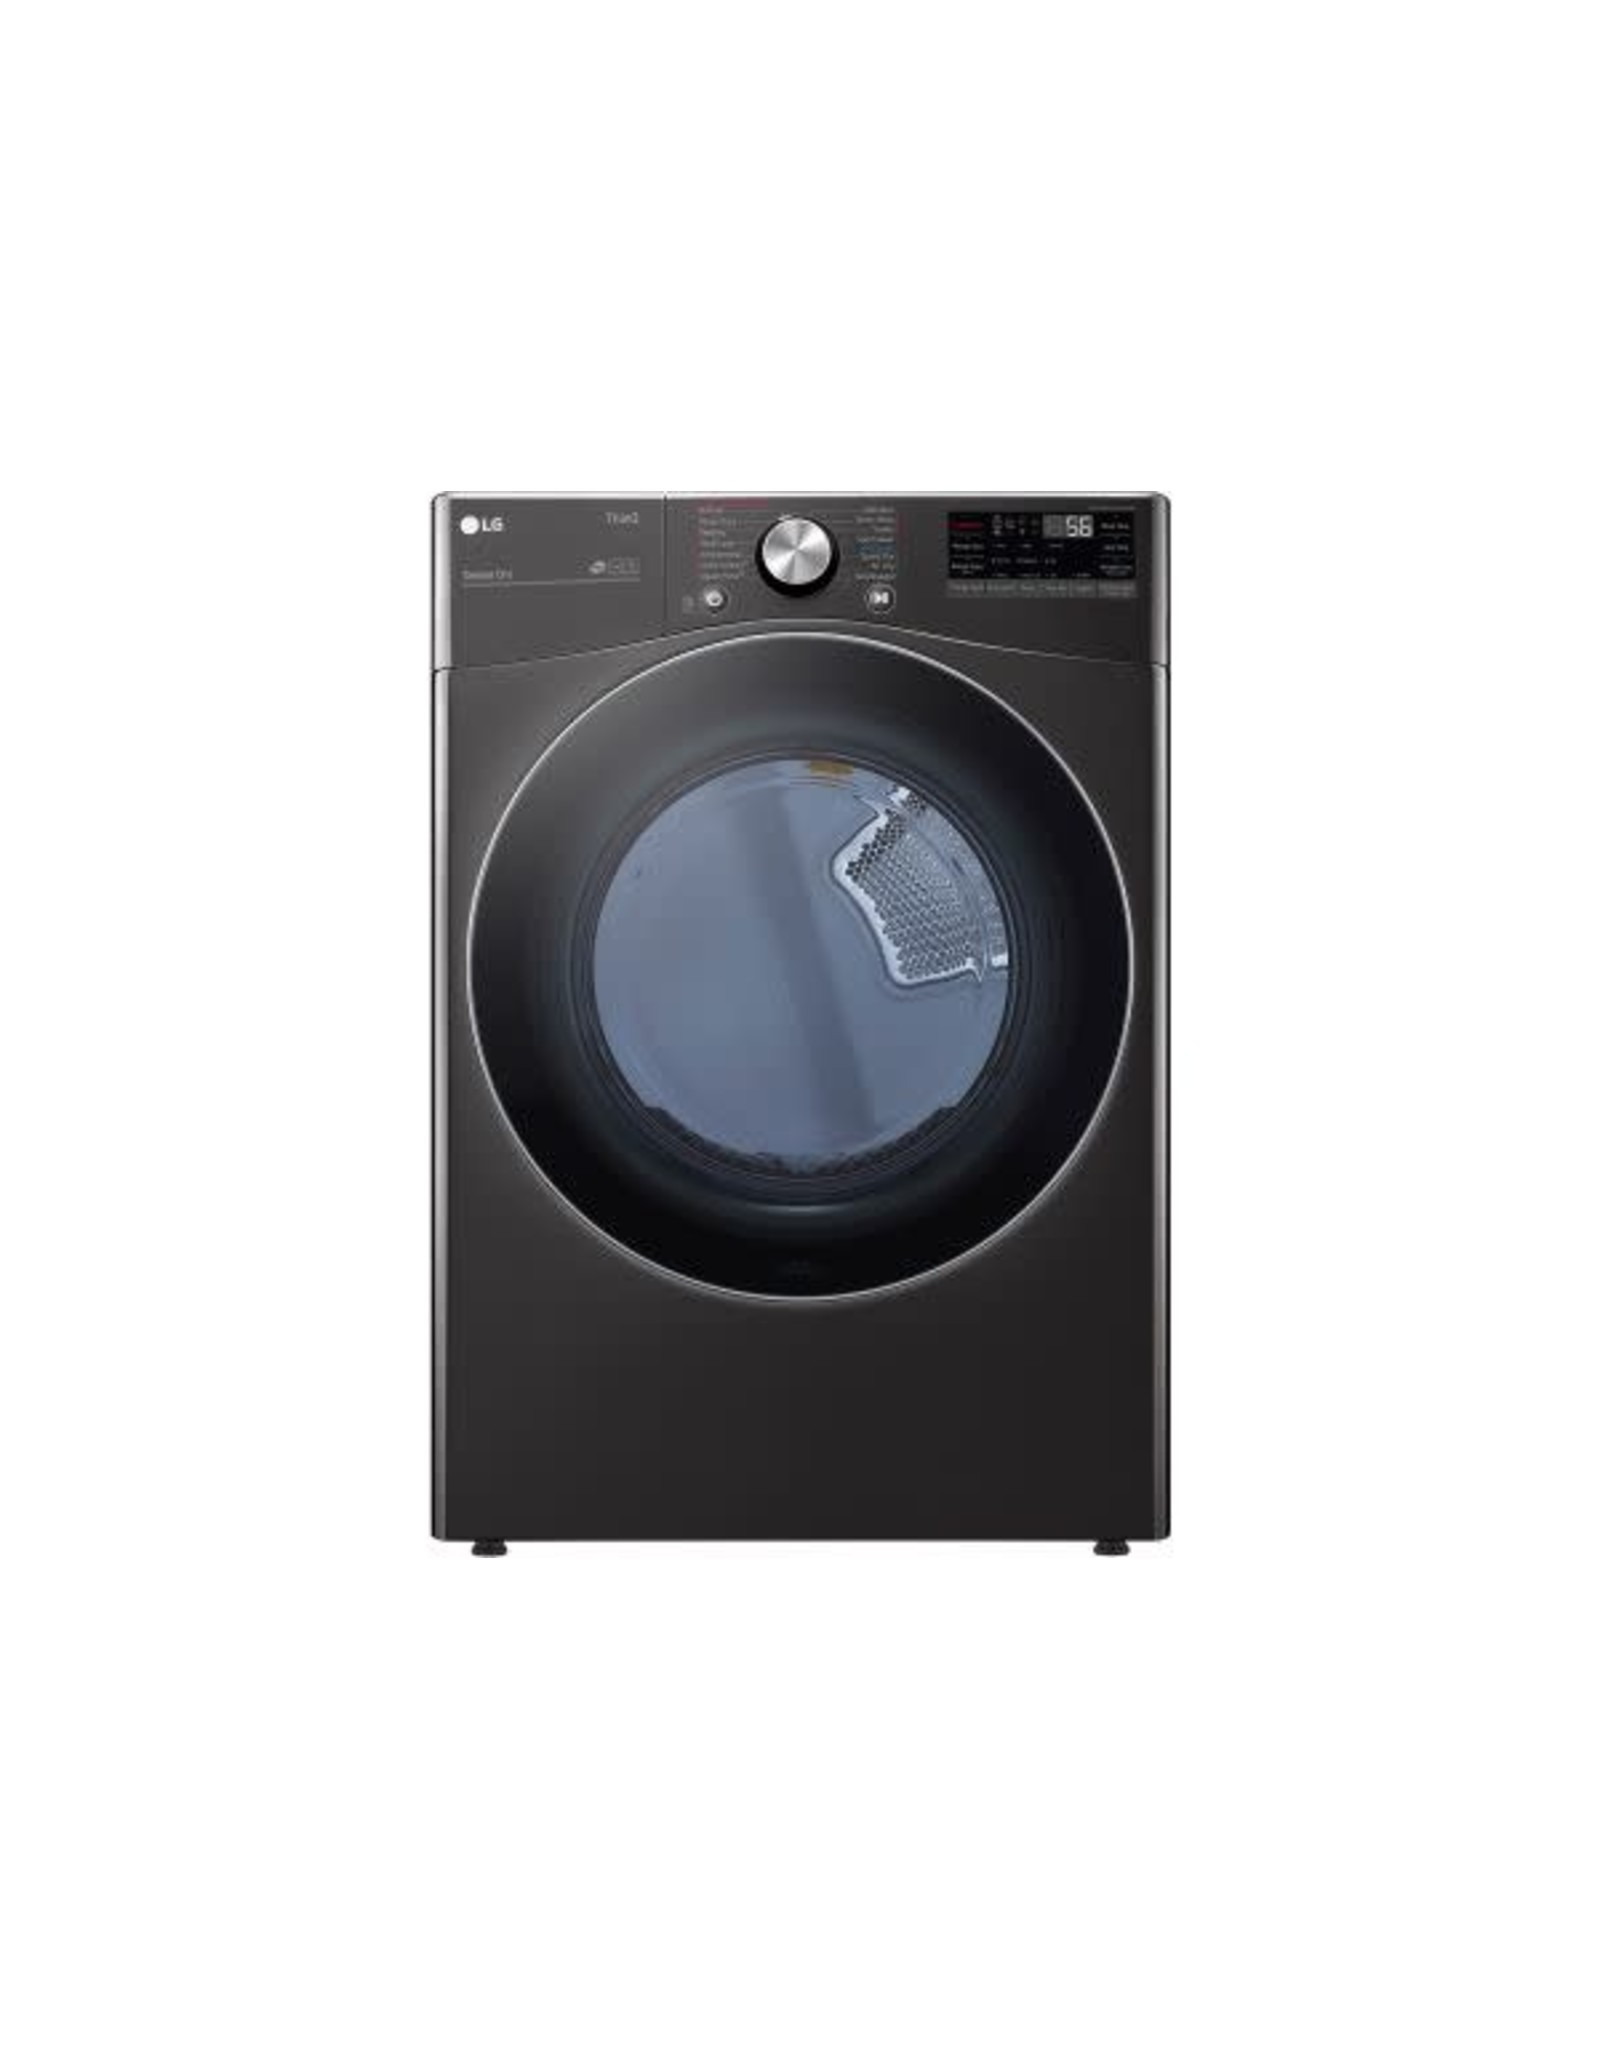 LG Electronics DLEX4200B 7.4 cu. ft. Ultra Large Capacity Black Steel Smart Electric Vented Dryer with Sensor Dry, TurboSteam & Wi-Fi Enabled